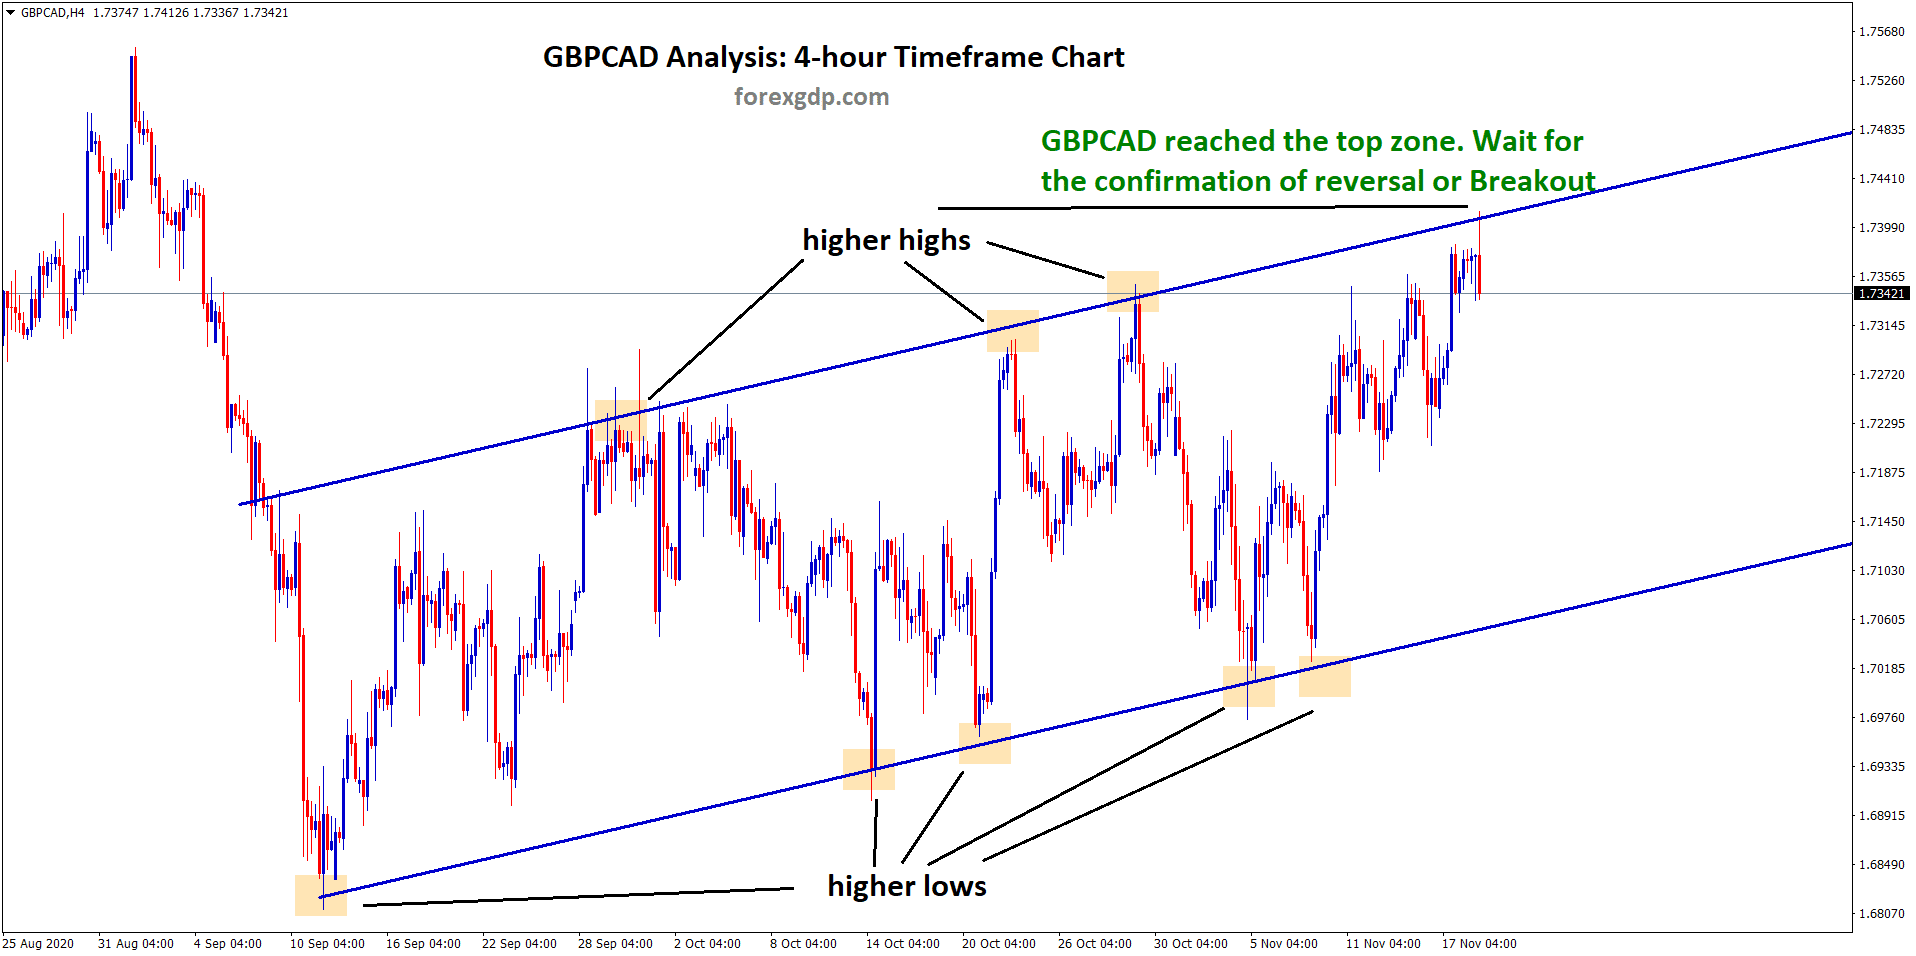 gbpcad reached the top zone wait for the confirmation of reverse or break